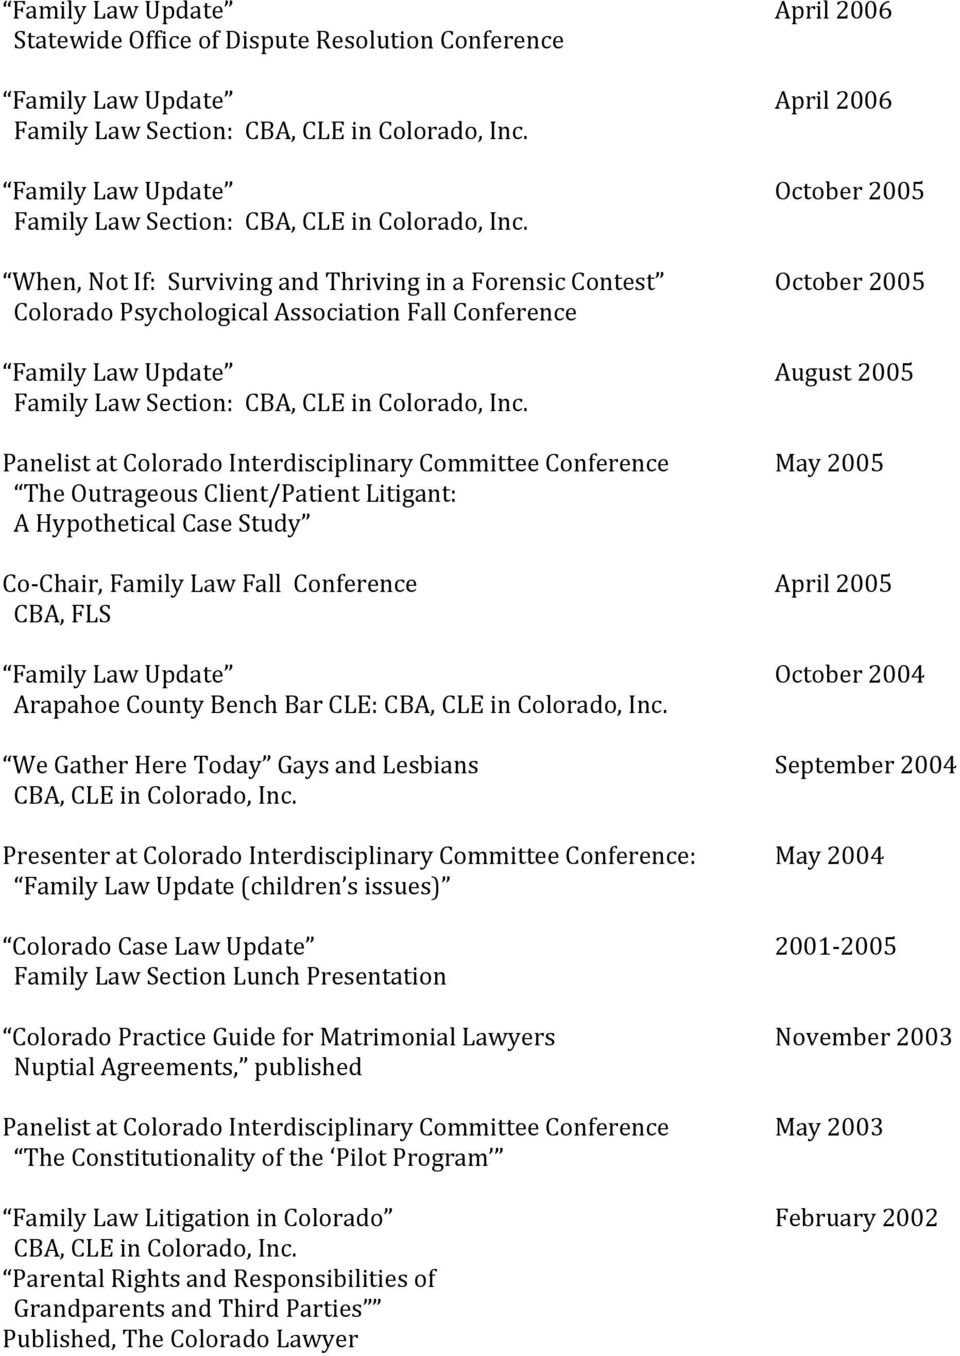 Committee Conference May 2005 The Outrageous Client/Patient Litigant: A Hypothetical Case Study Co Chair, Family Law Fall Conference April 2005 CBA, FLS Family Law Update October 2004 Arapahoe County